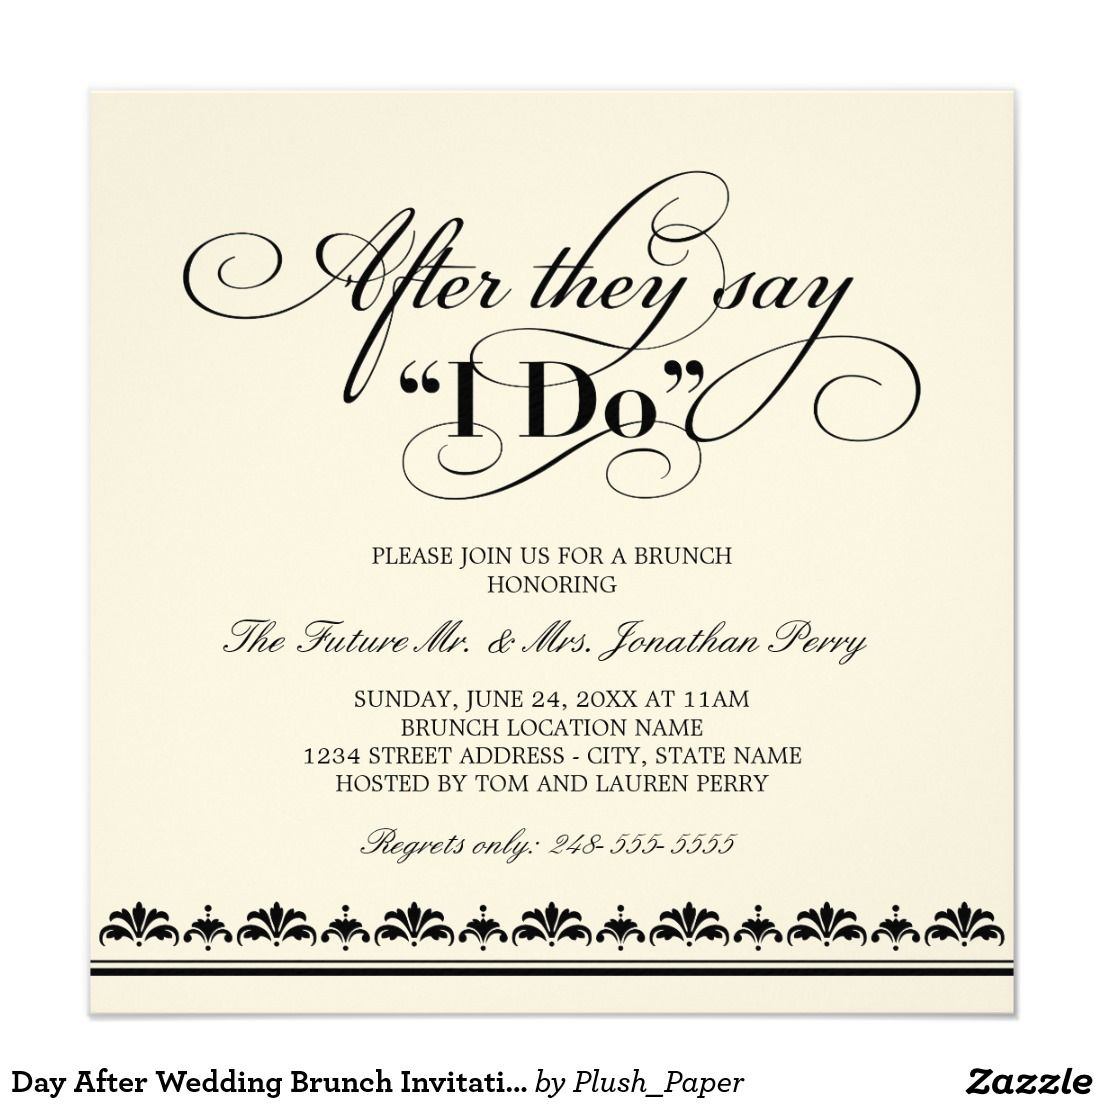 79dbdc704f501b1796f23859e2ea523d day after wedding brunch invitation wedding vows brunch,Wedding Breakfast Invitations